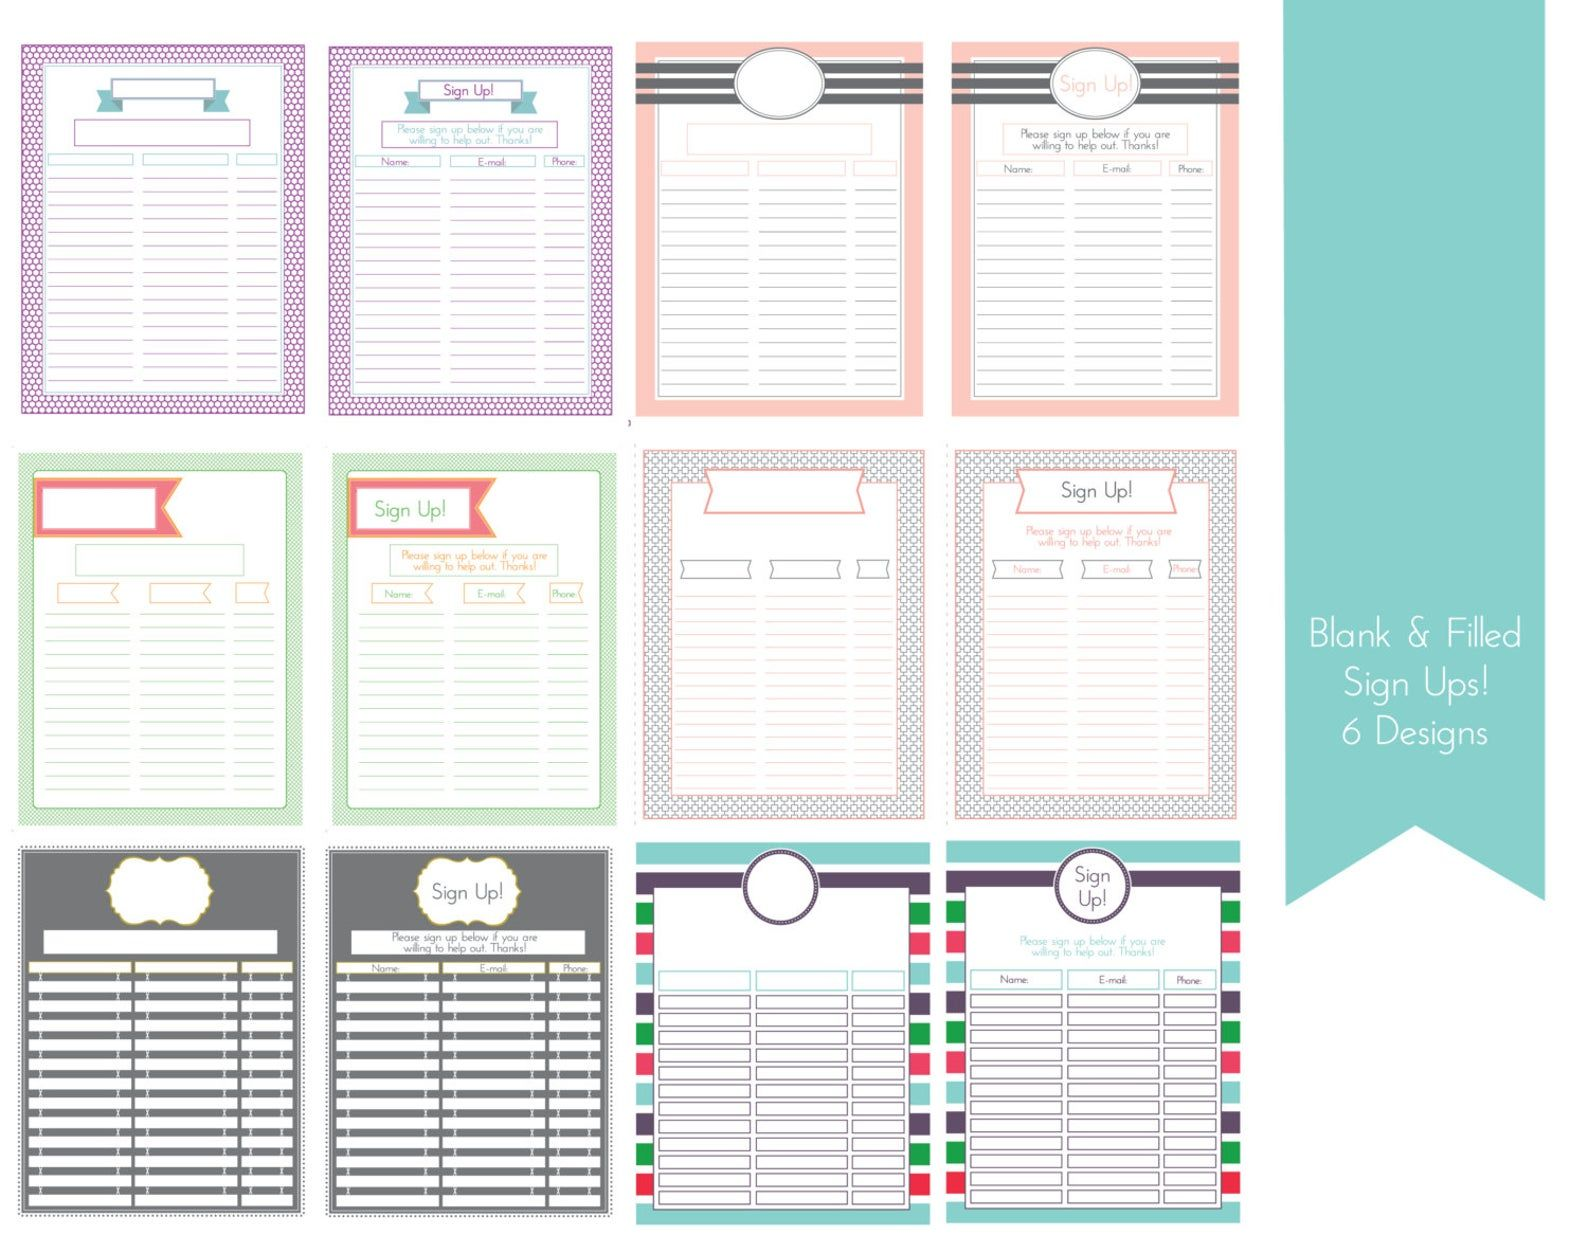 Sign Up Sheets 6 Designs Filled And Unfilled With Editable